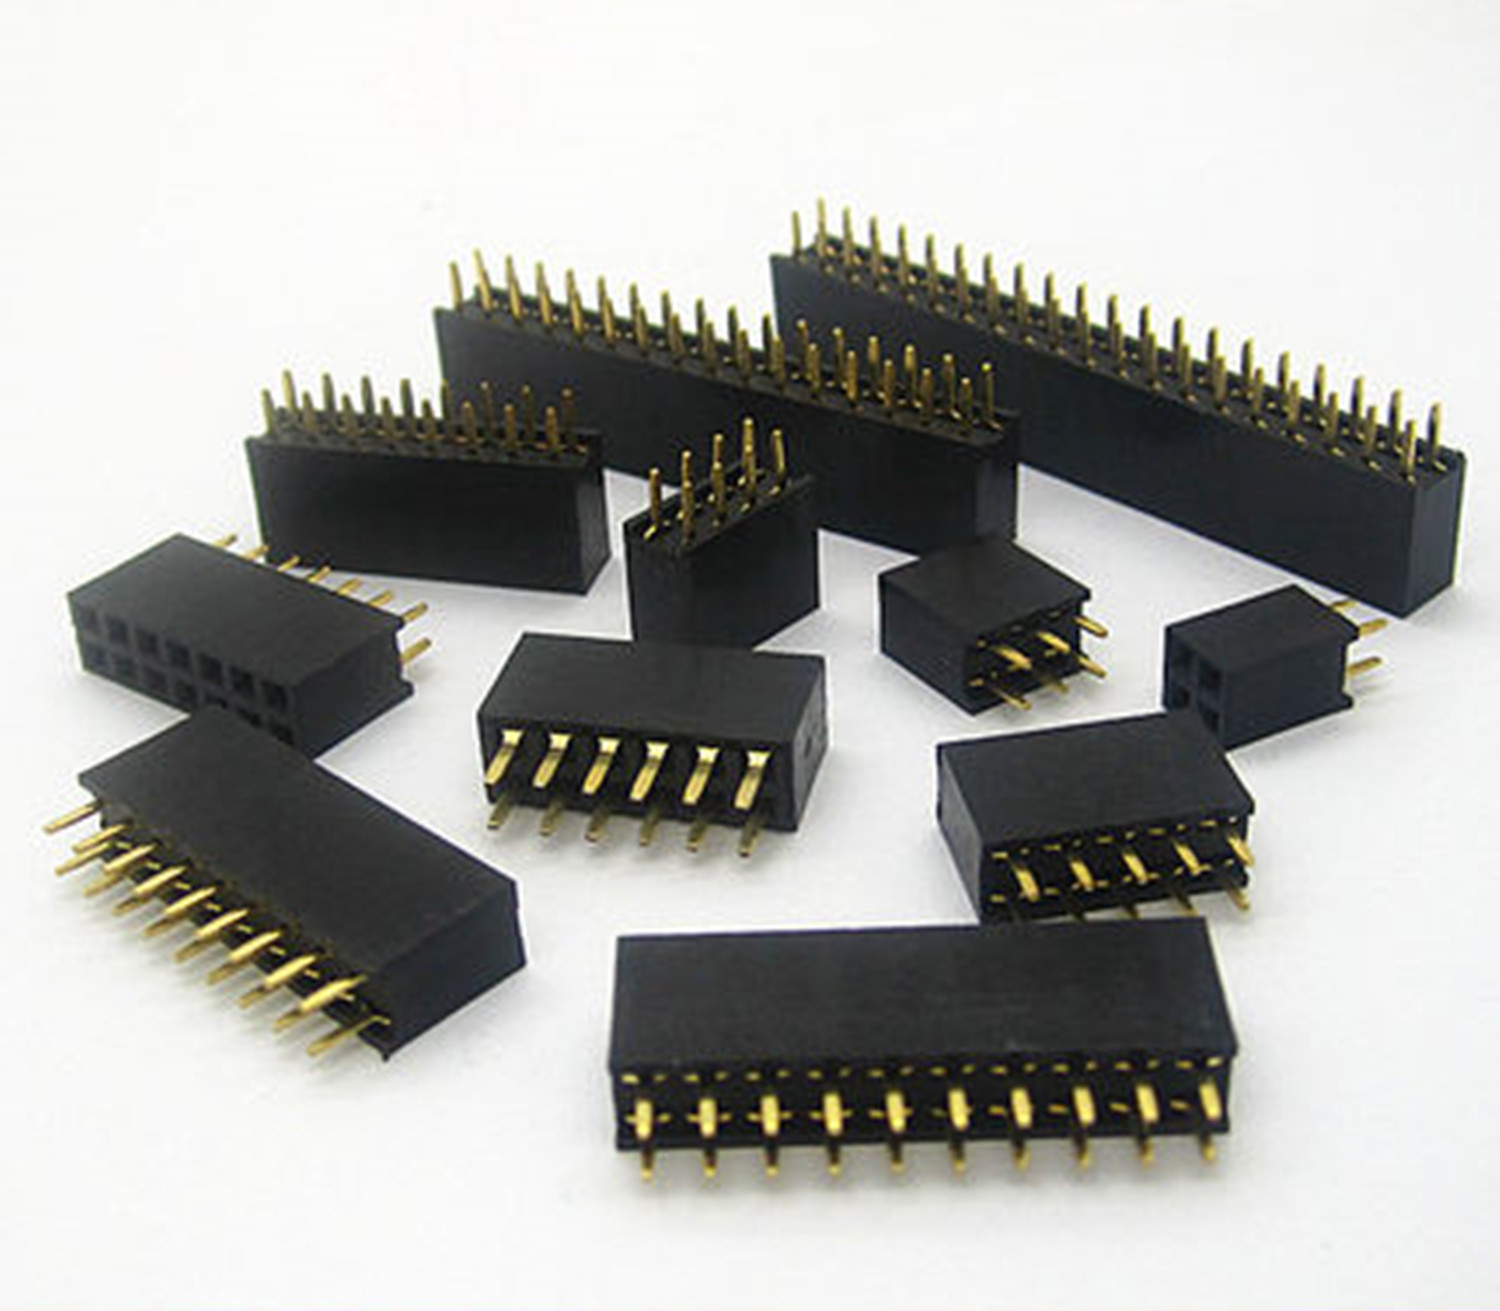 2x2/3/4/5/6/7/8/9/10/11/12/13/14/15/16/17/18/20/25/40Pin Pitch 2.54mm Double Row Stright Female Pin Header Strip PCB Connector 14 15 3 2015